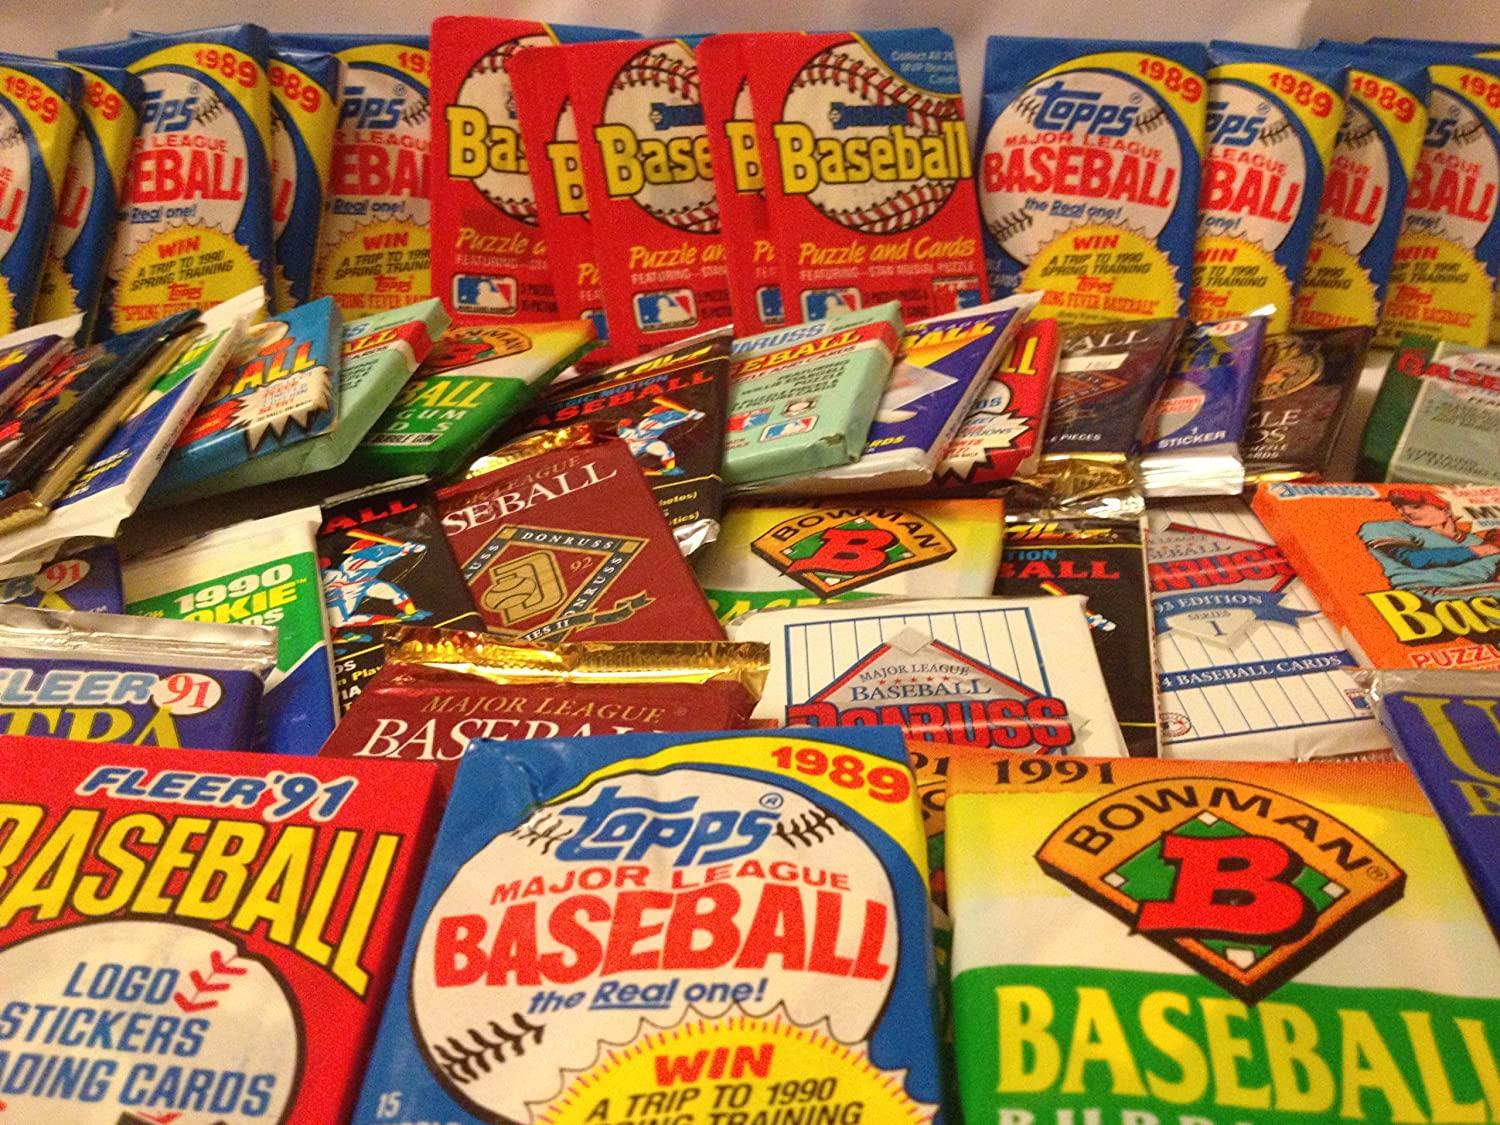 100 Vintage Baseball Cards in Old Sealed Wax Packs - Perfect for New Collectors A1uiIPYkt0L